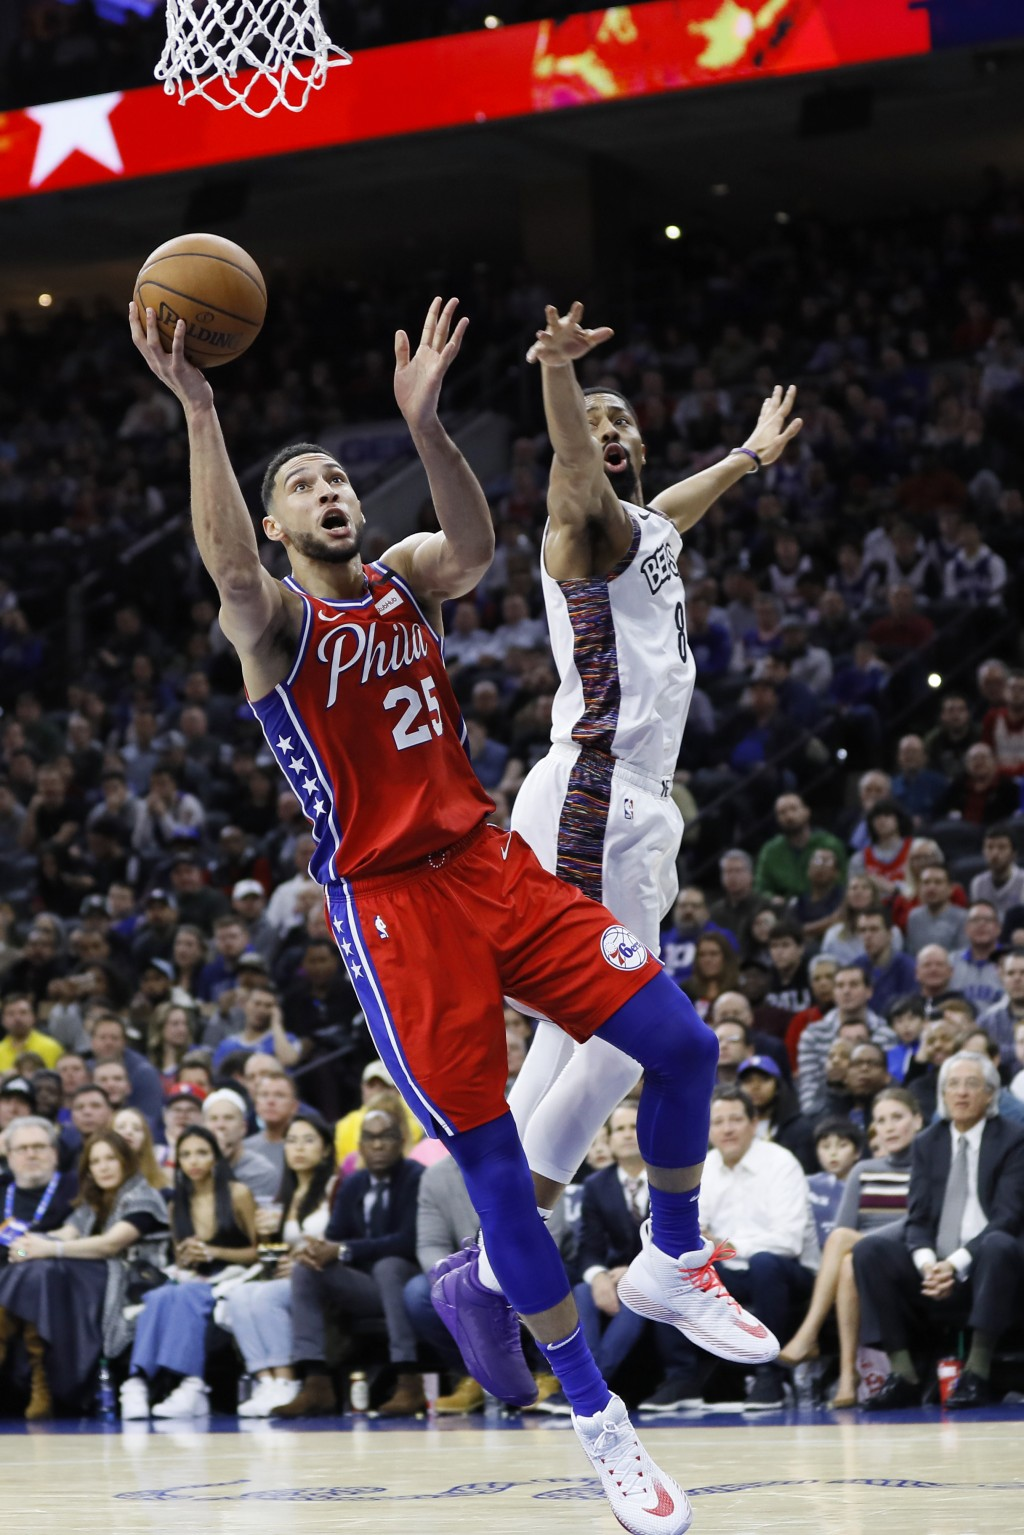 Philadelphia 76ers' Ben Simmons, left, goes up for a shot past Brooklyn Nets' Spencer Dinwiddie during the first half of an NBA basketball game, Wedne...